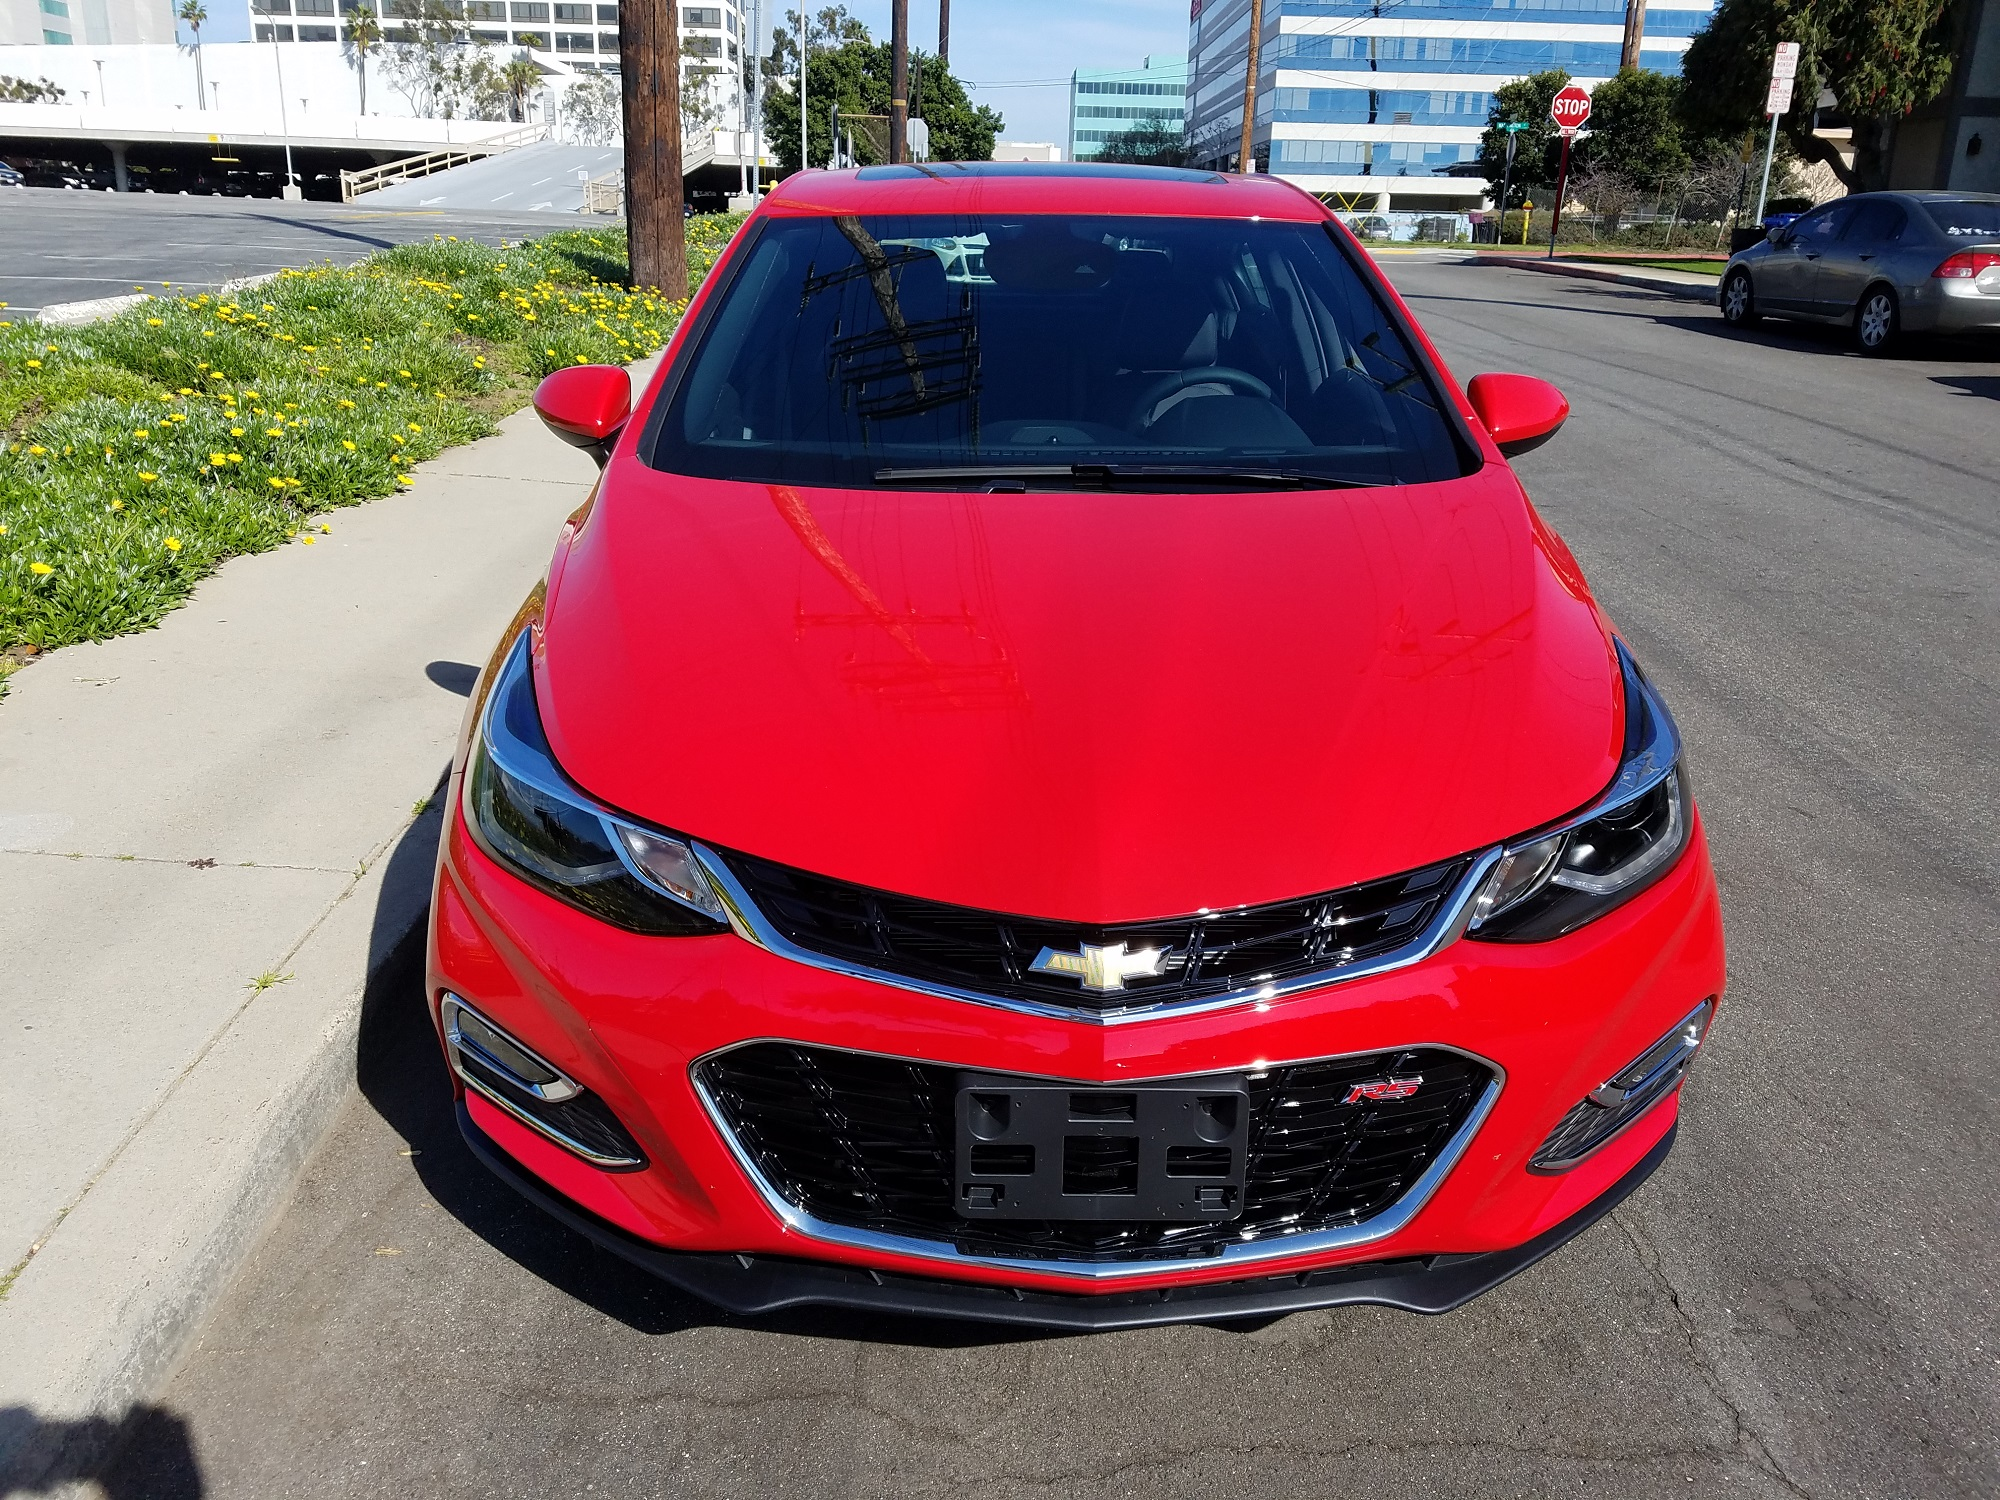 carblog.com 2017 2018 Chevy Chevrolet Cruze RS Hatchback New Car Review